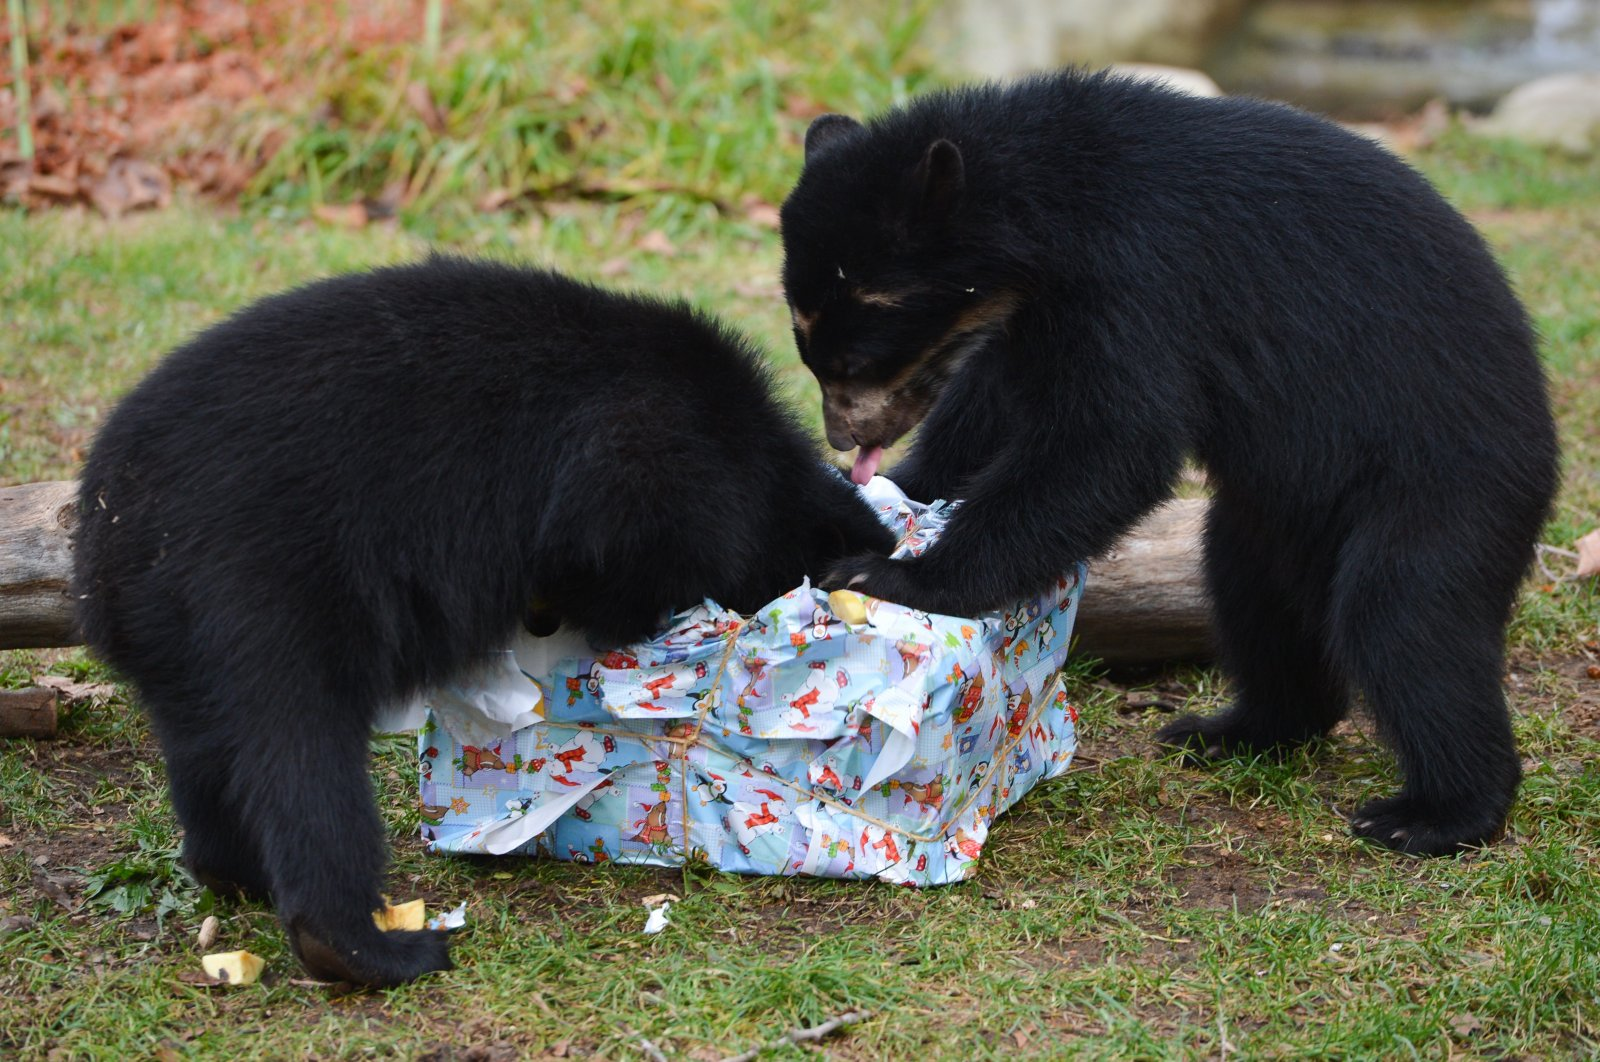 Andean bear twins Tupa und Sonco  open their Christmas gift box with fruit and vegetables in their enclosure in the zoo in Frankfurt, Germany Thursday Dec. 25, 2014.  (AP Photo)